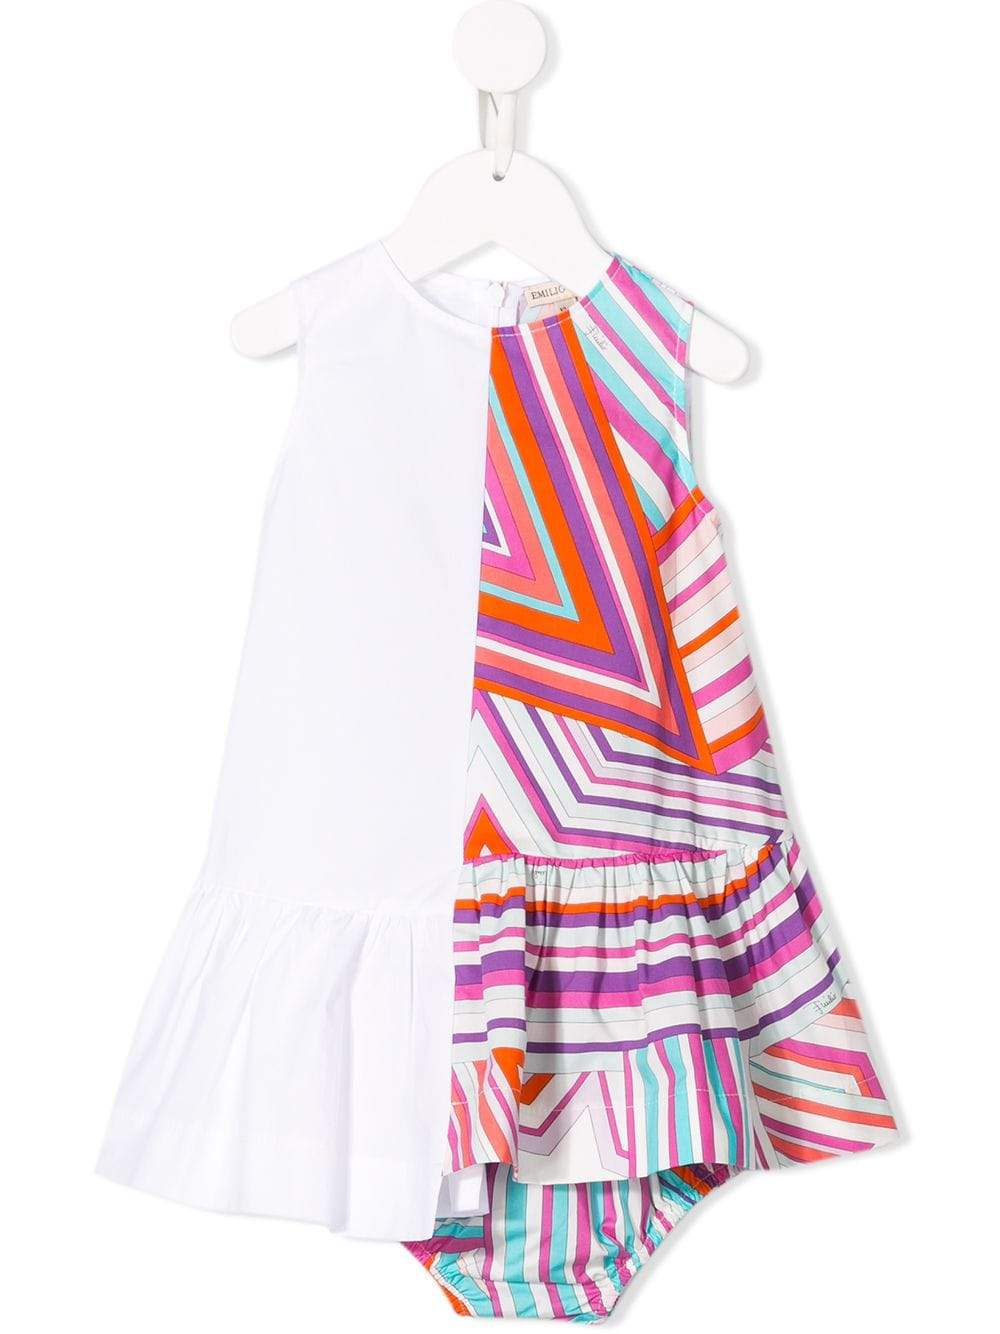 Emilio Pucci Junior BABY GIRLS COTTON DRESS WITH KNICKERS | Emilio Pucci Kids